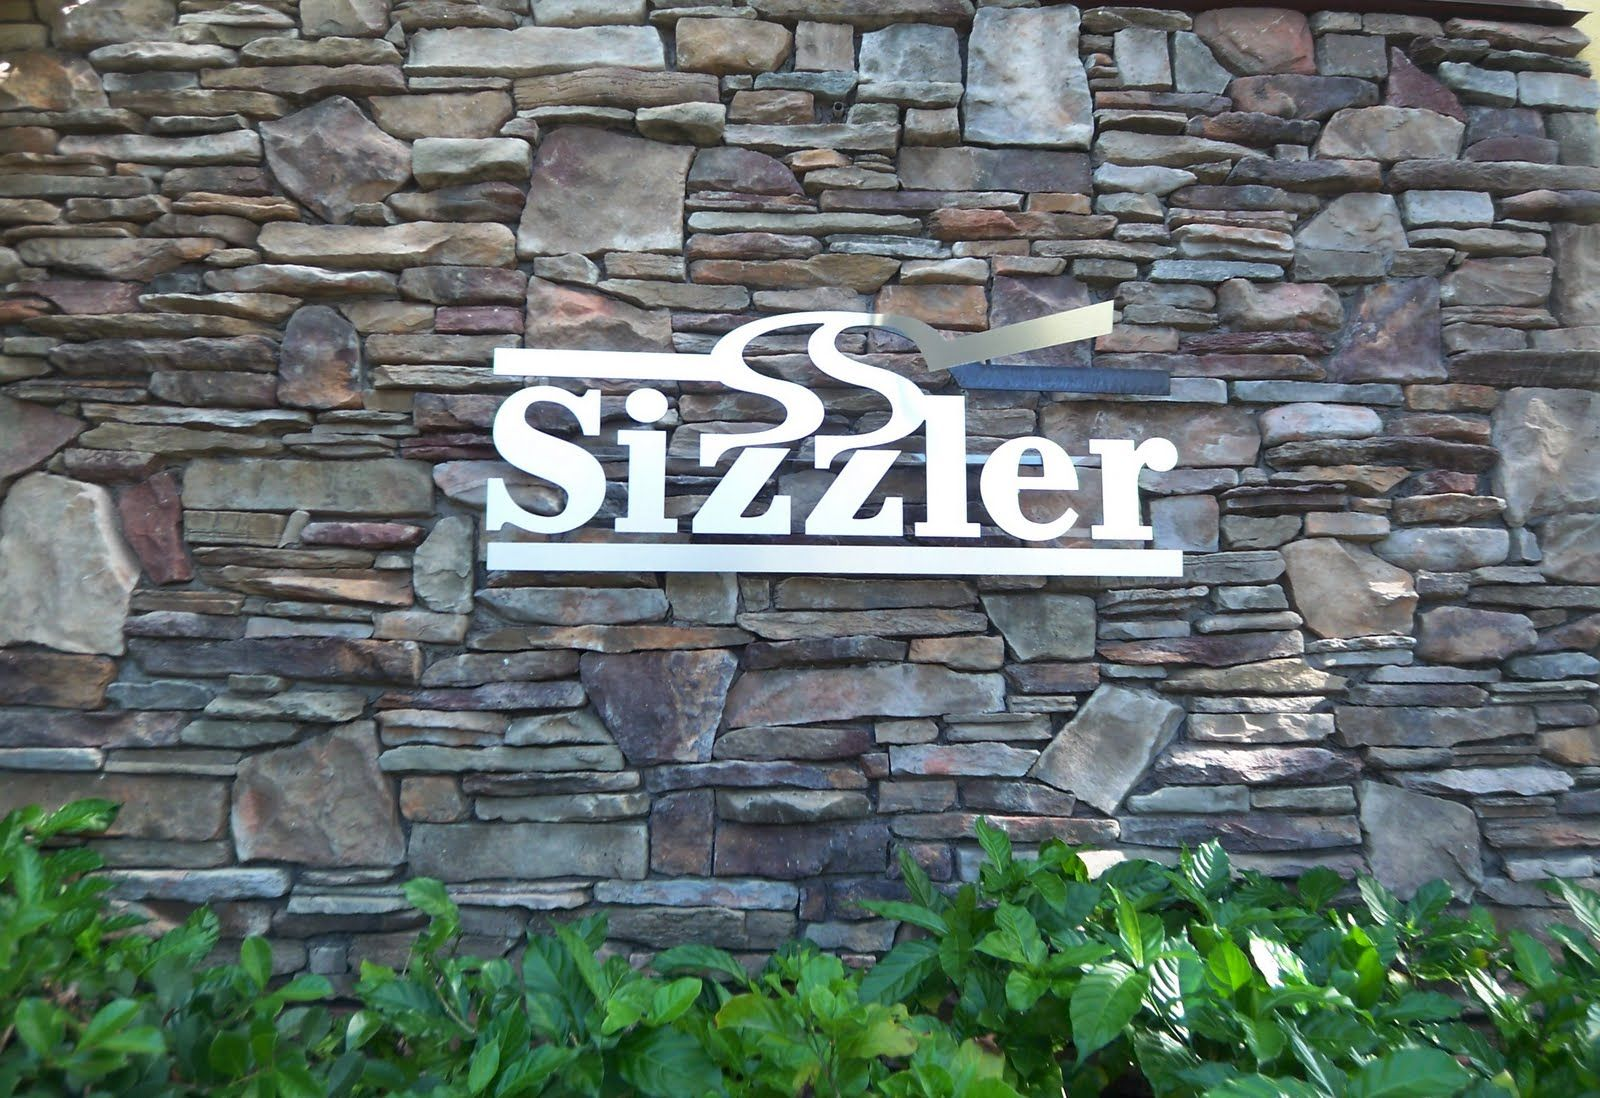 photograph relating to Sizzler Coupons Printable called Sizzler Coupon: $2 Greenback Off Sizzler Coupon Absolutely free